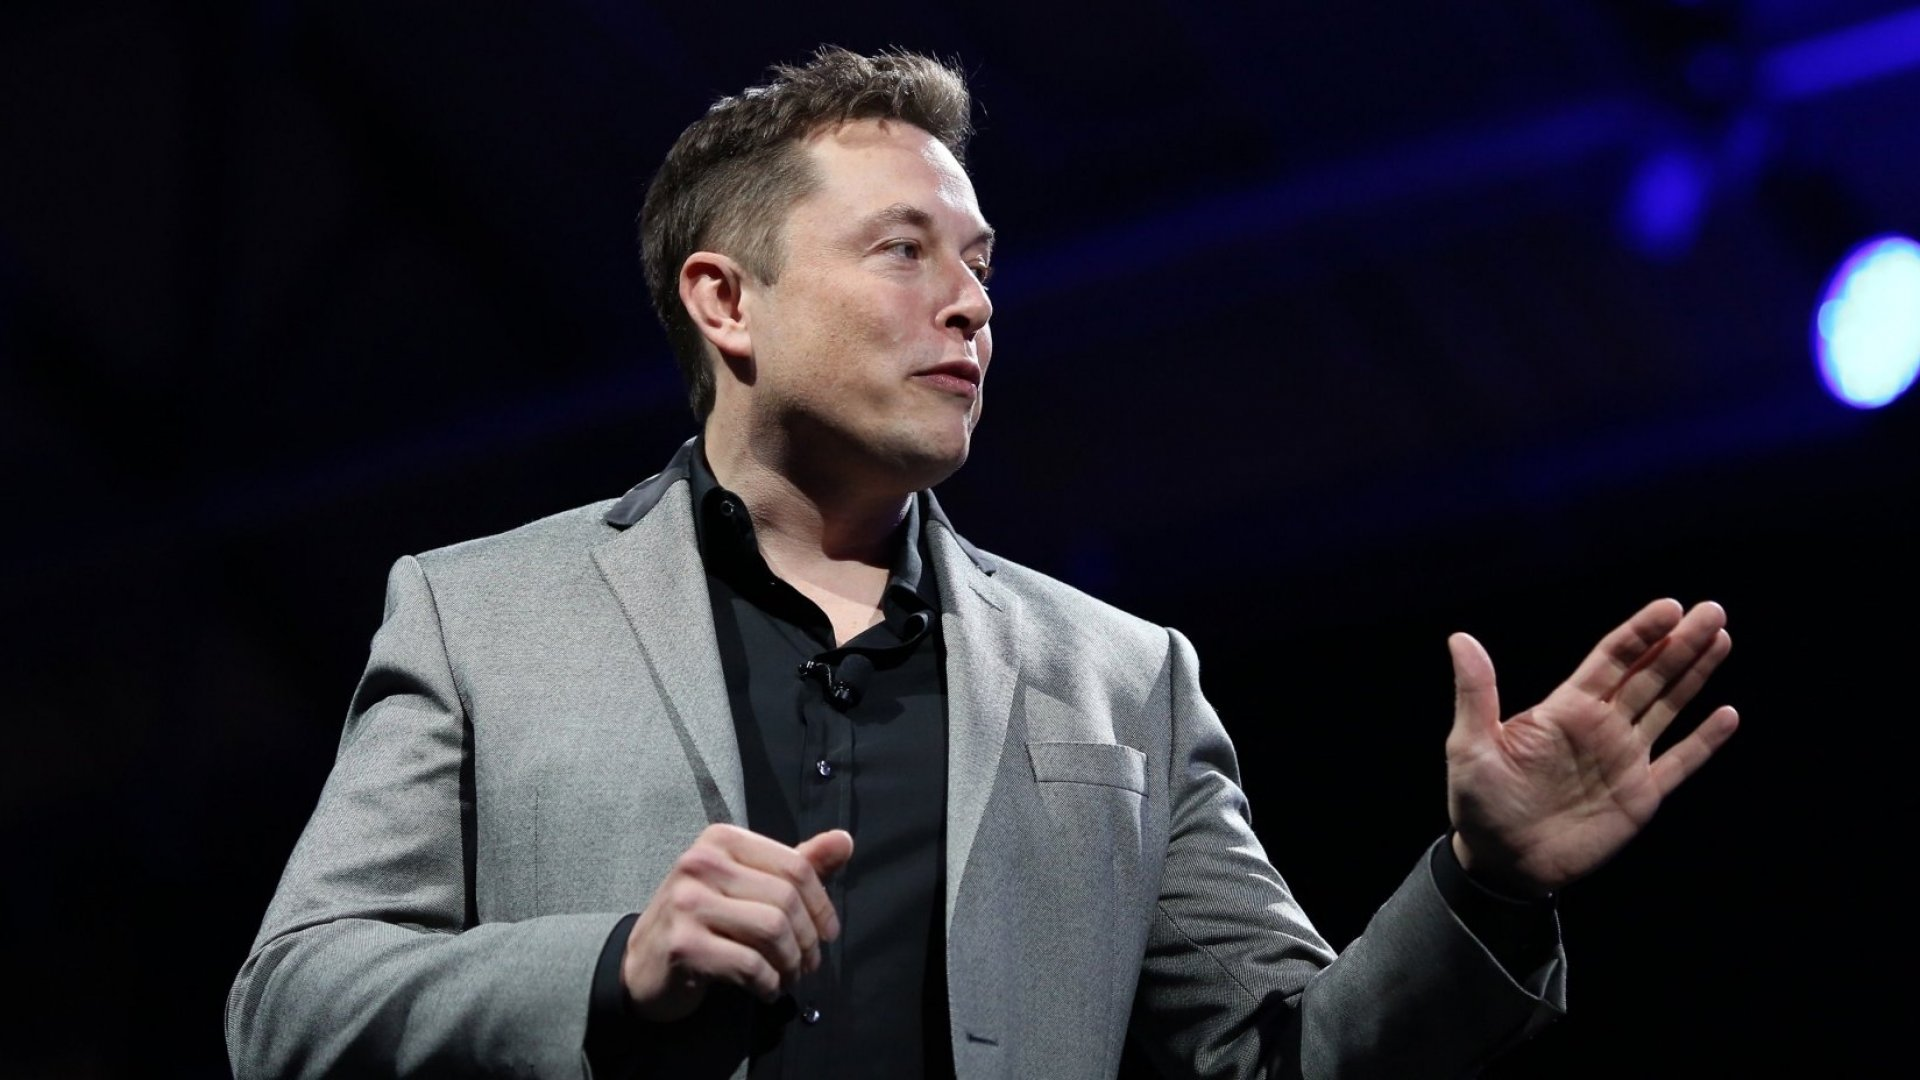 4 Powerful Qualities That Richard Branson, Elon Musk and Steve Jobs Have In Common